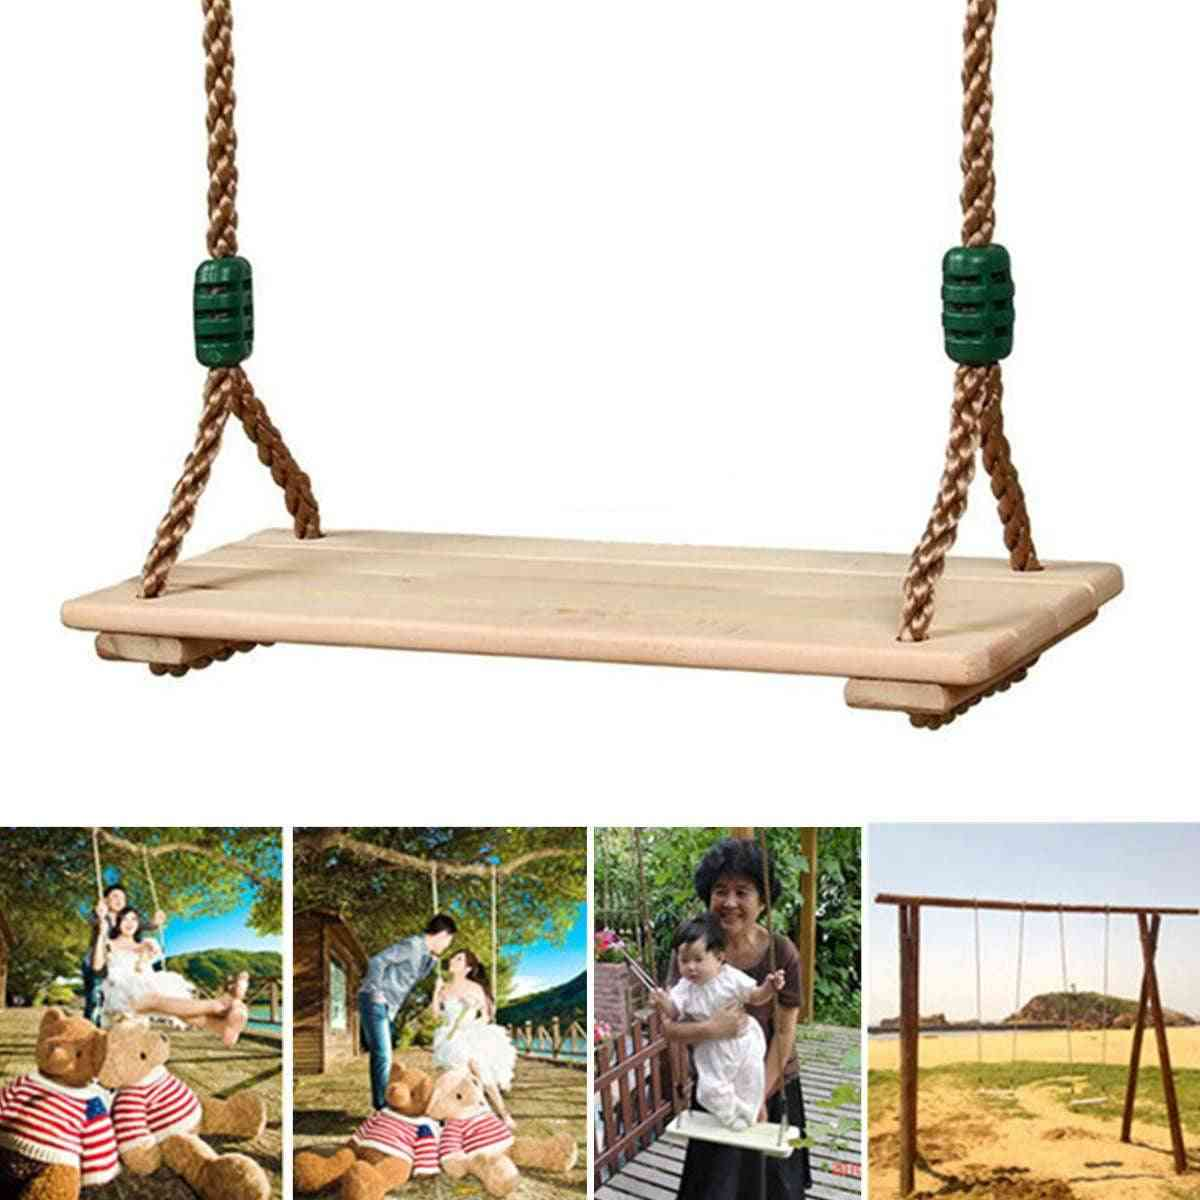 Wooden Garden Swing Seat For Adults And Children With Rope